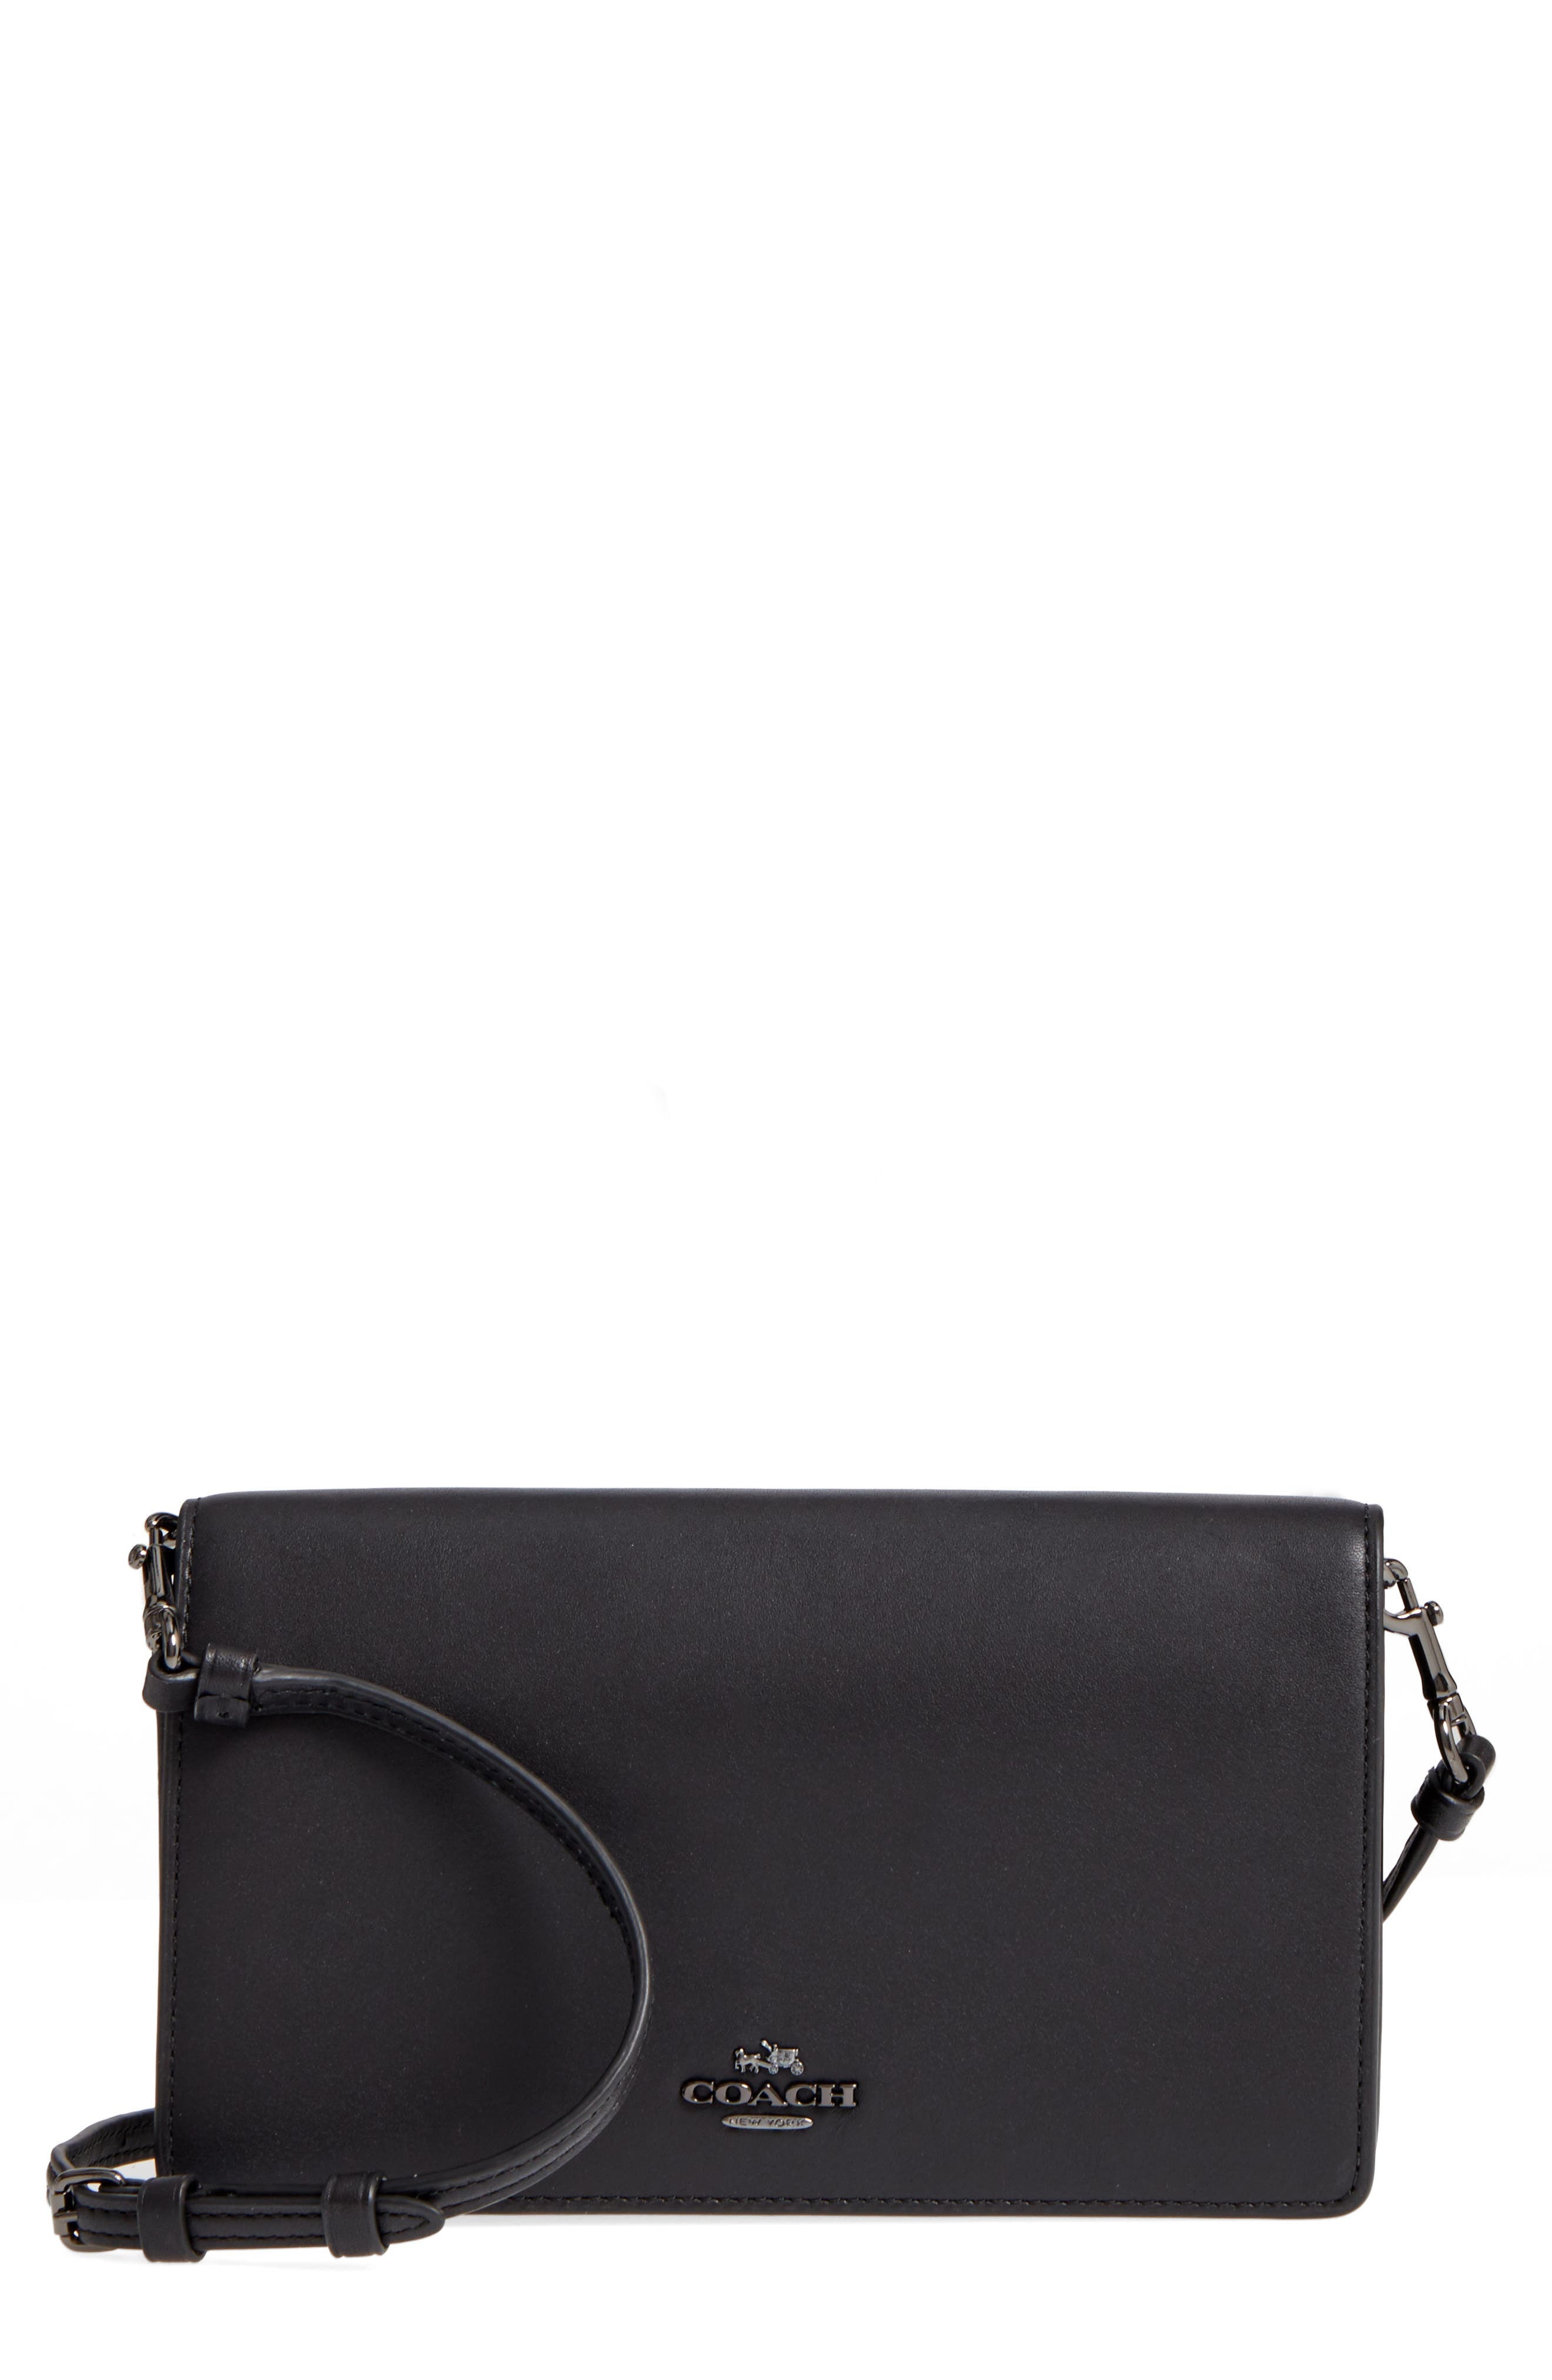 Calfskin Leather Foldover Convertible Clutch,                             Main thumbnail 1, color,                             009